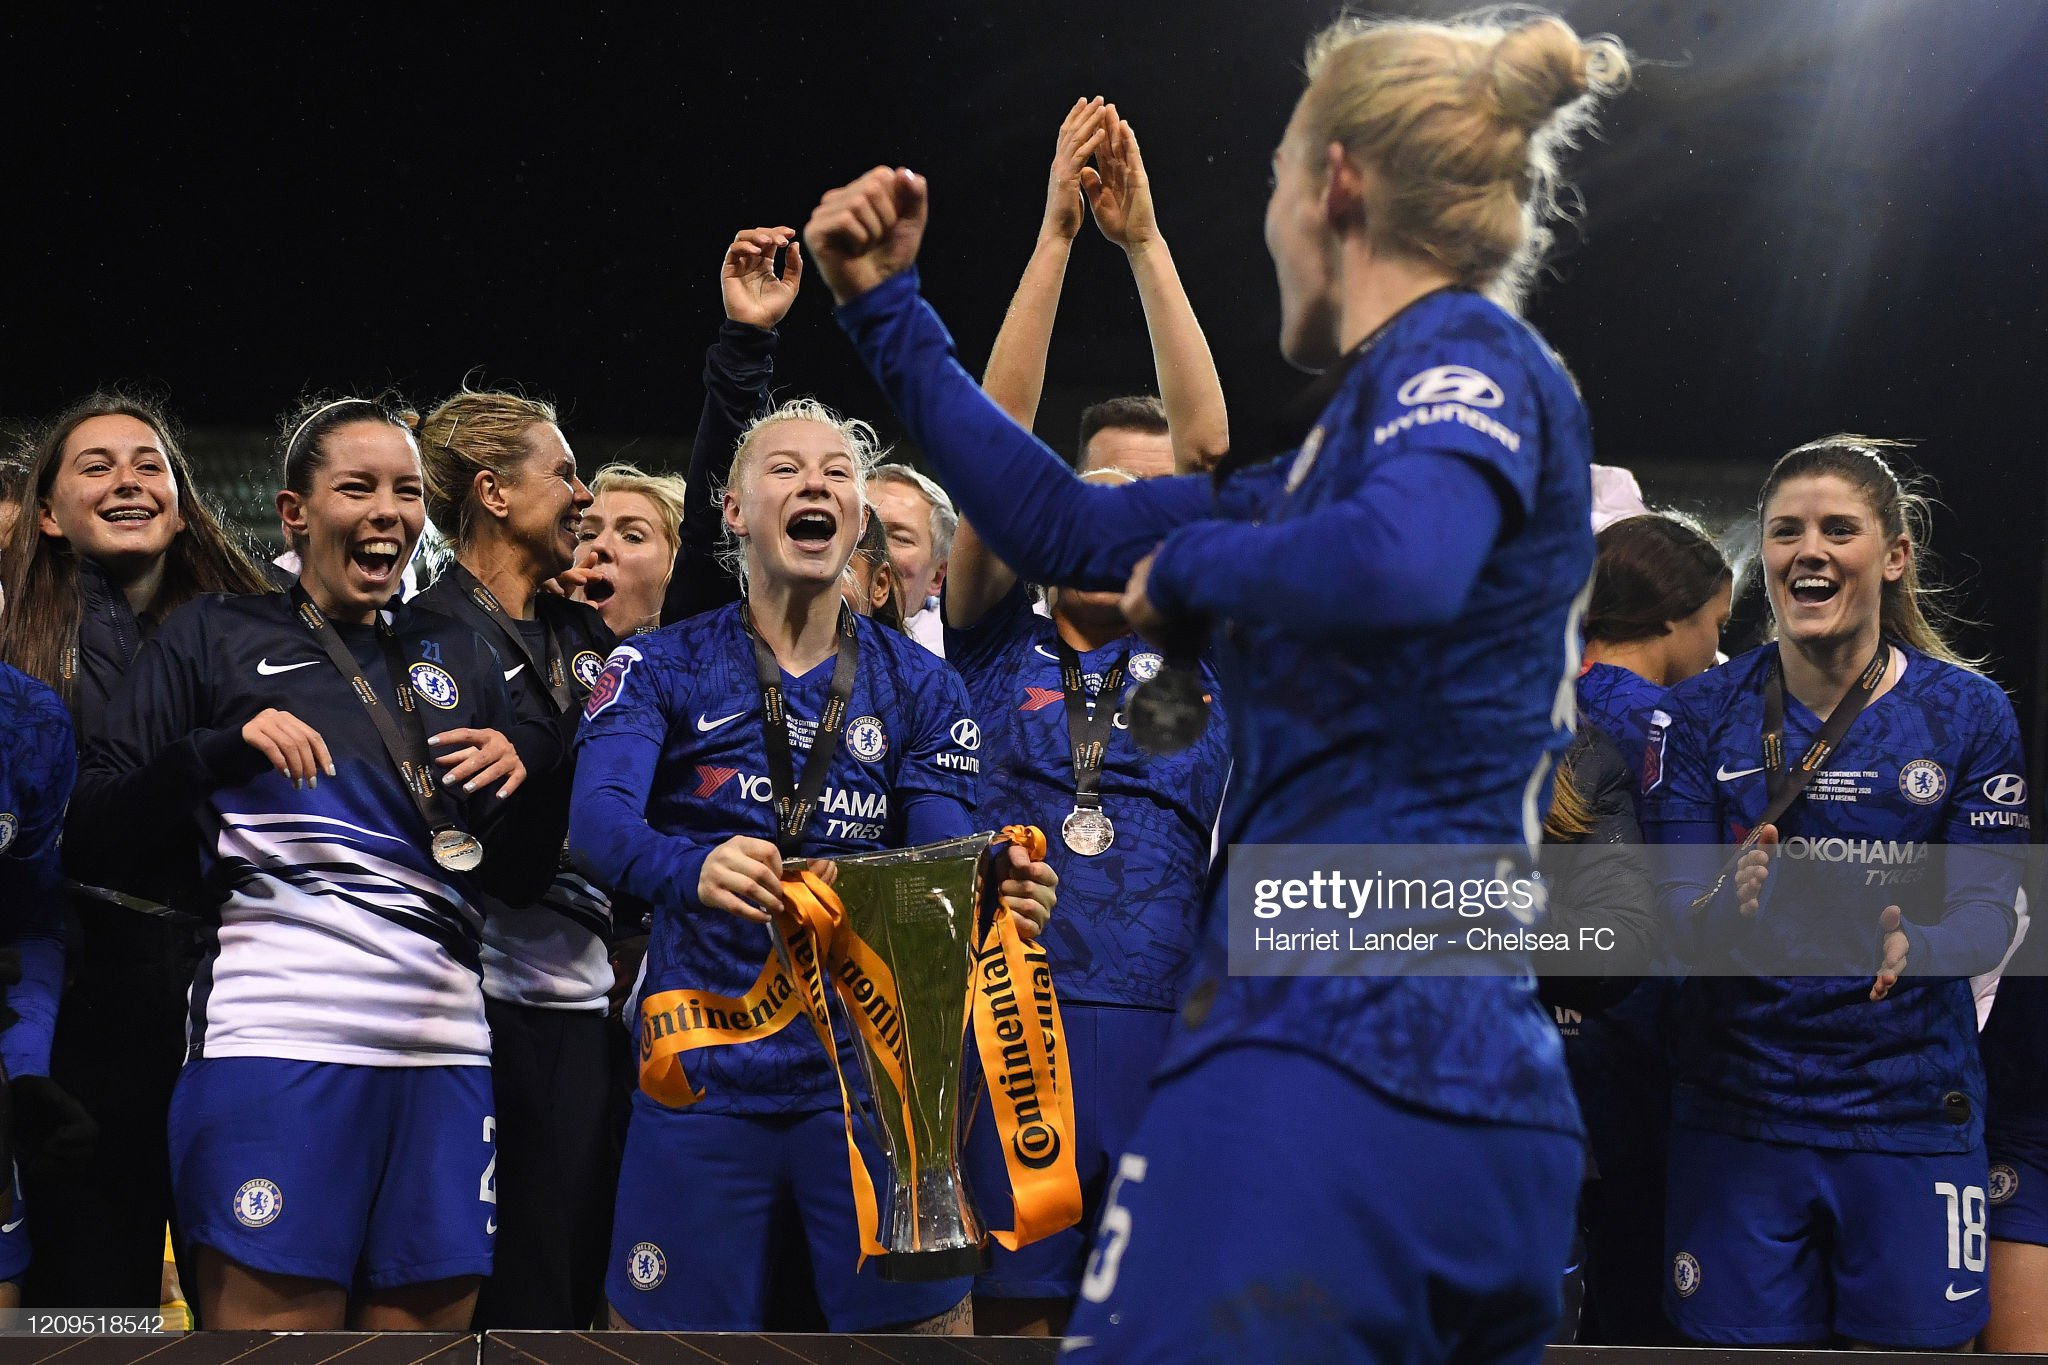 Sophie Ingle . . . The Barry Wanderer Who Journeyed To The Top Of The Women's Super League